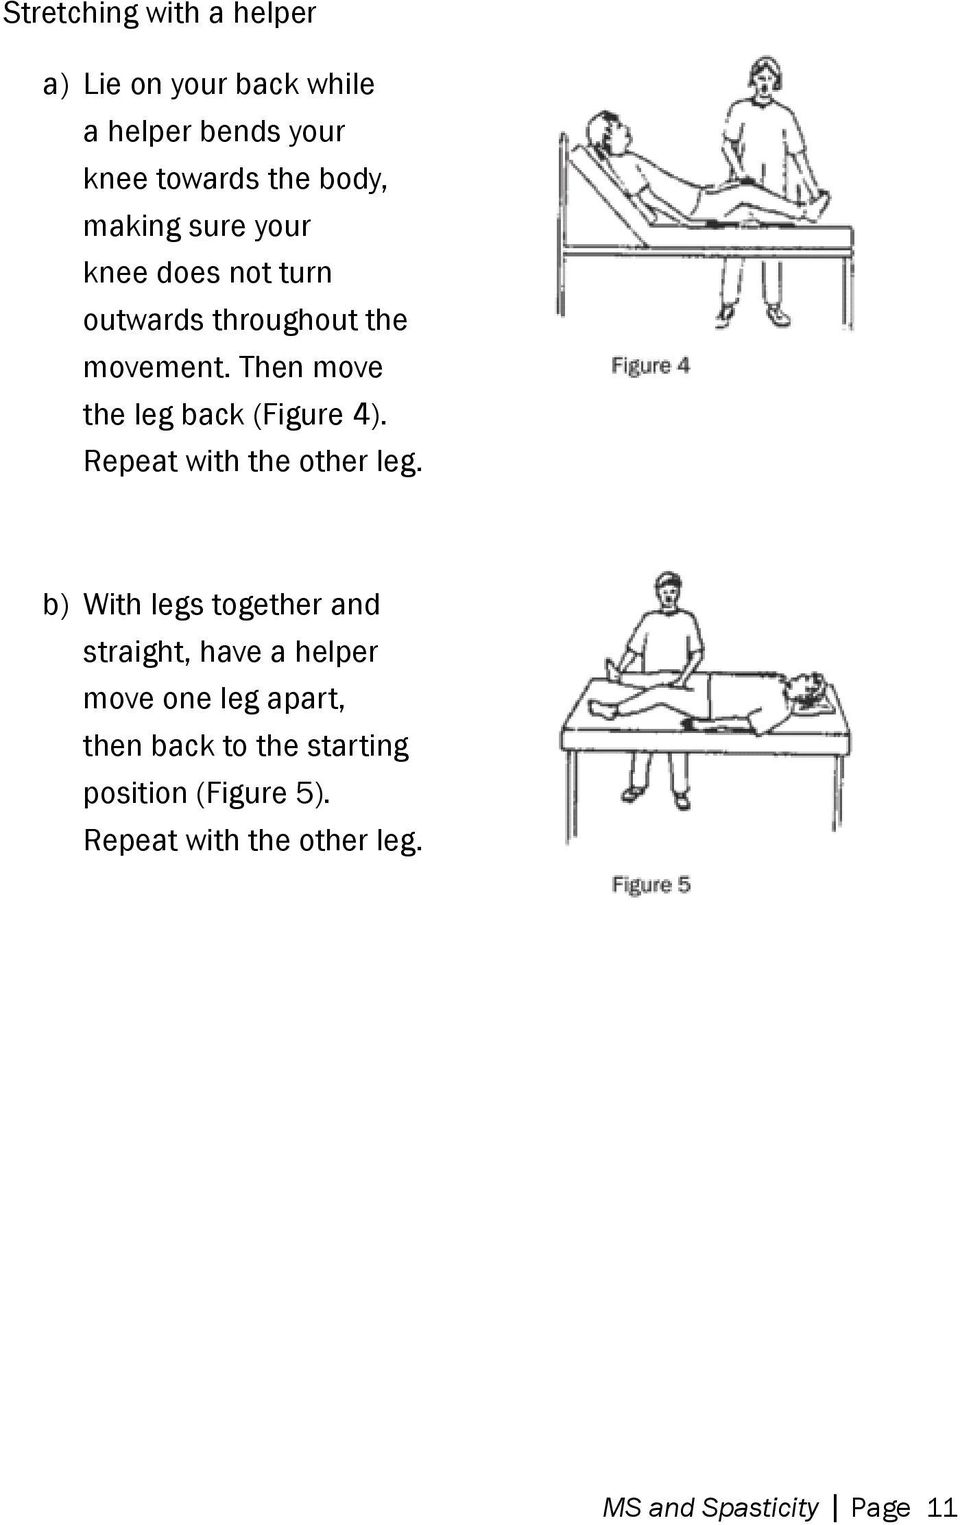 Then move the leg back (Figure 4). Repeat with the other leg.